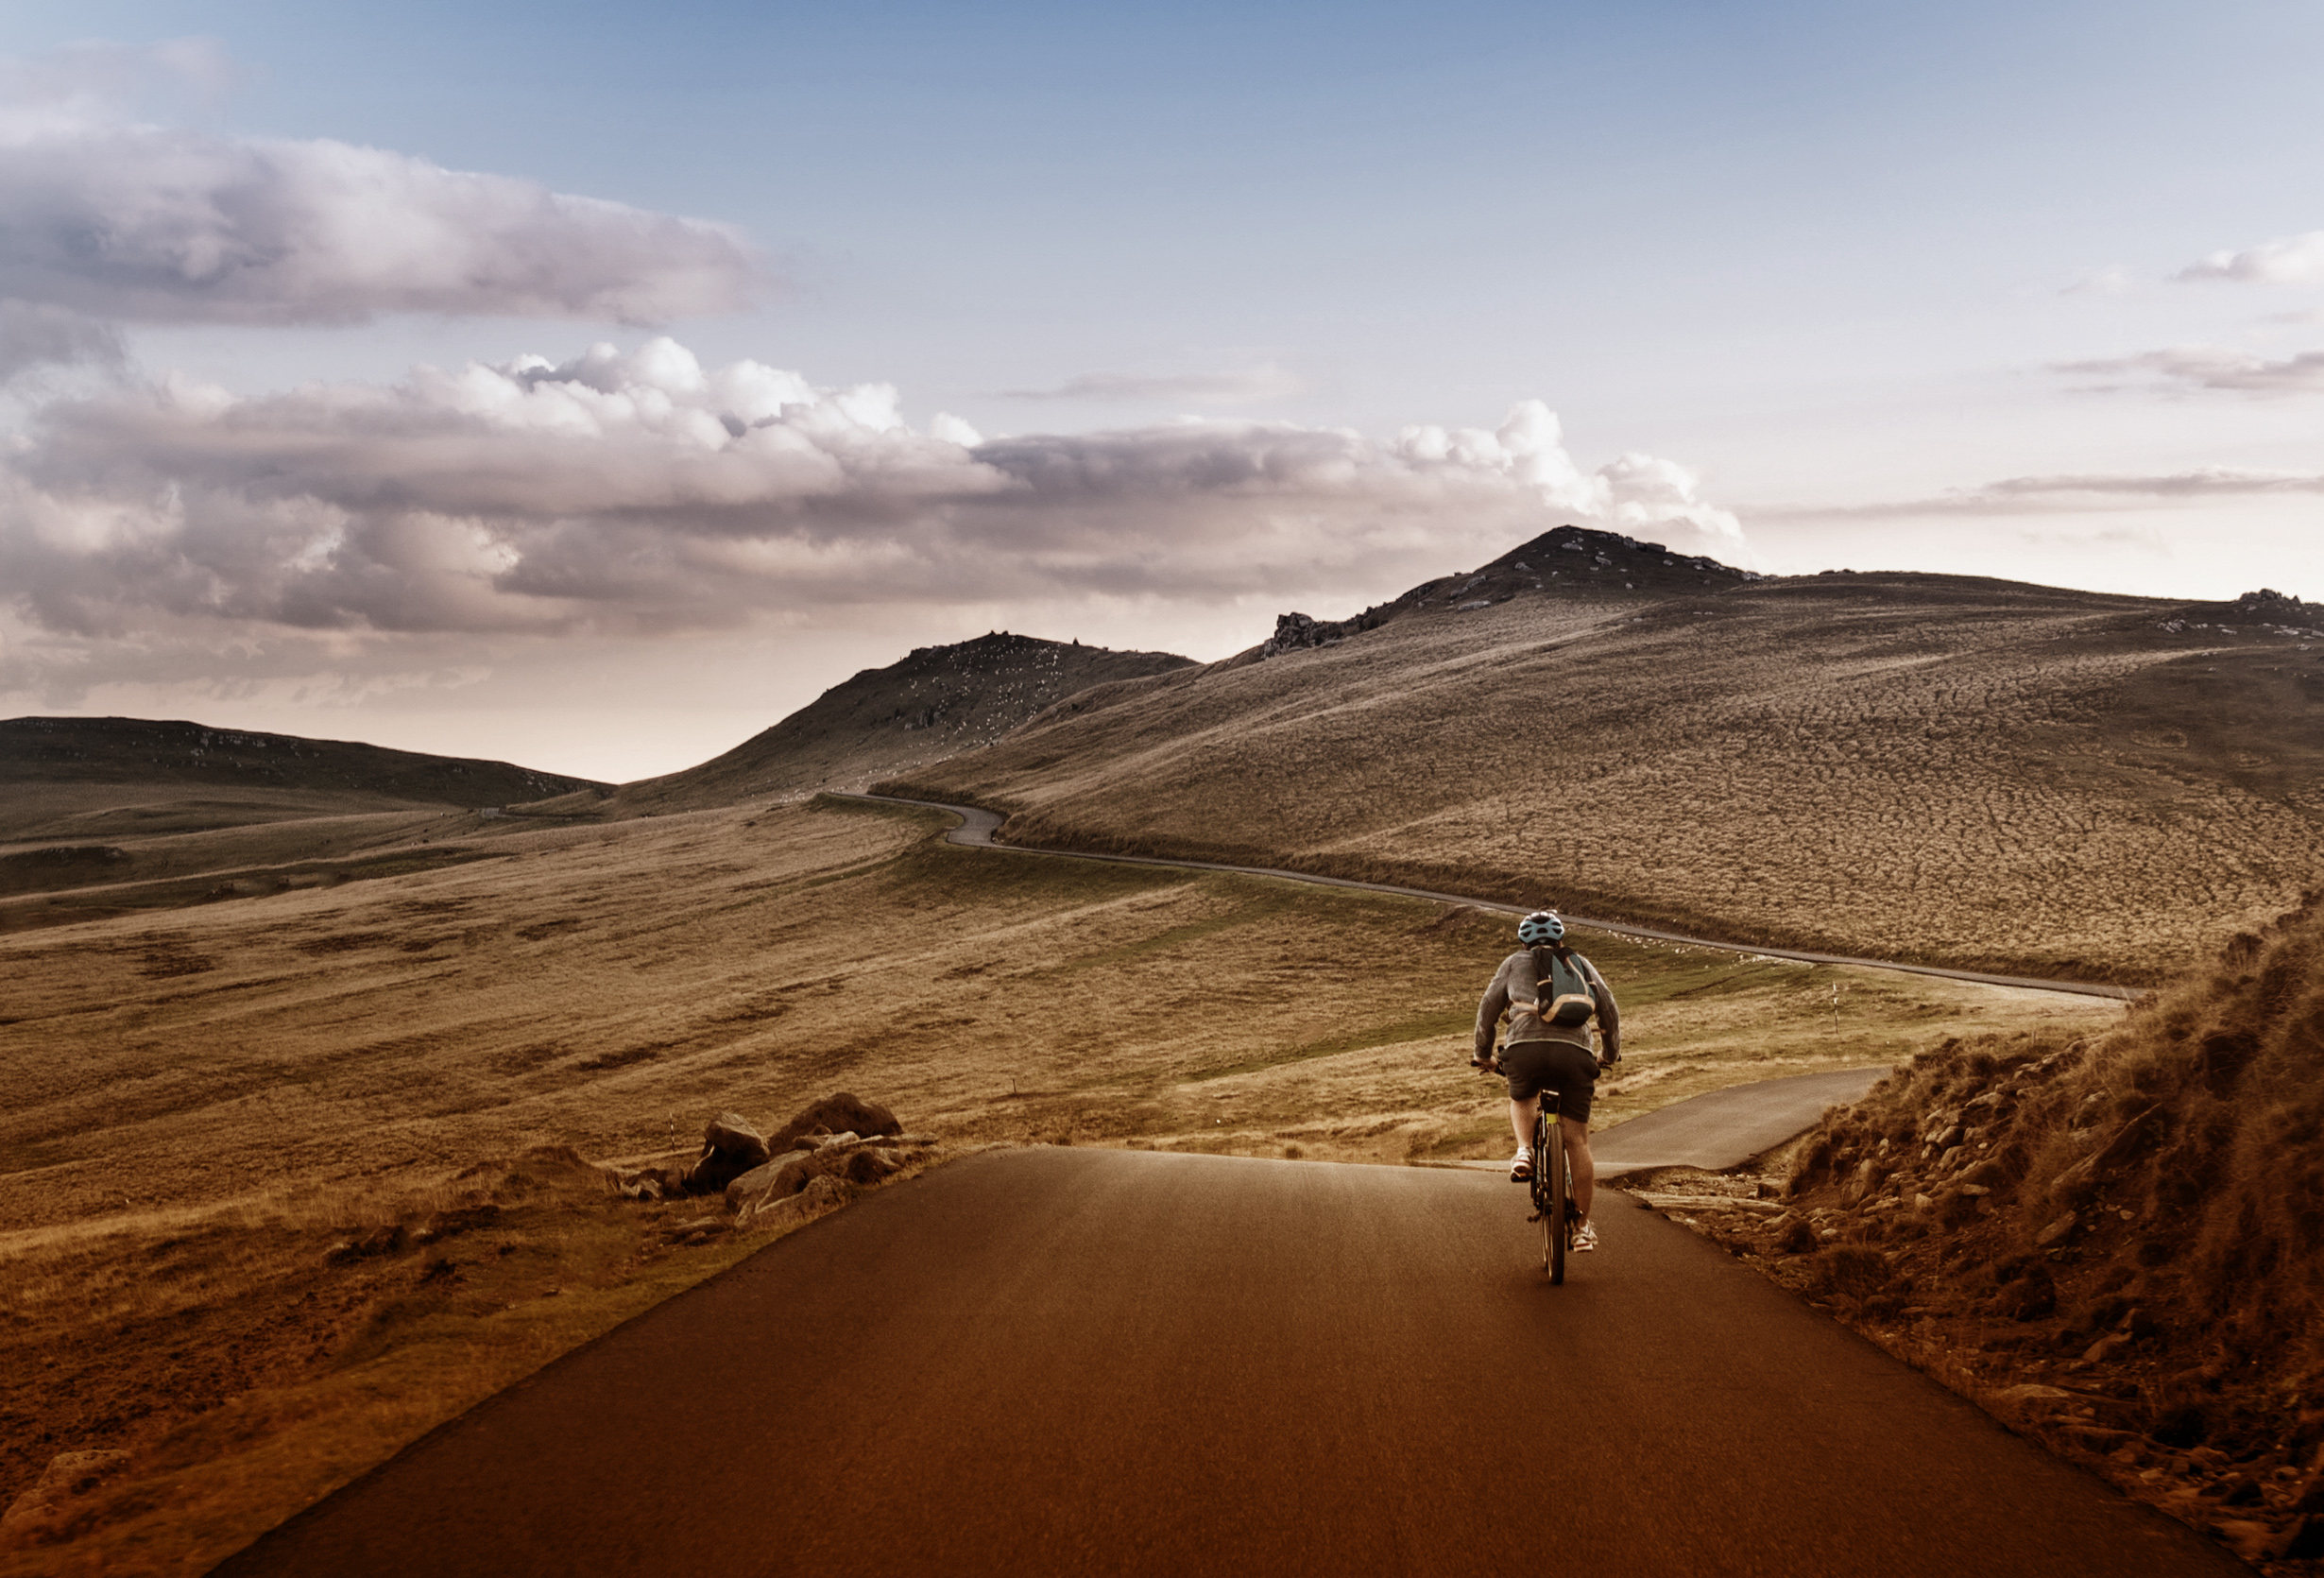 Lone biker on the road through mountains photo